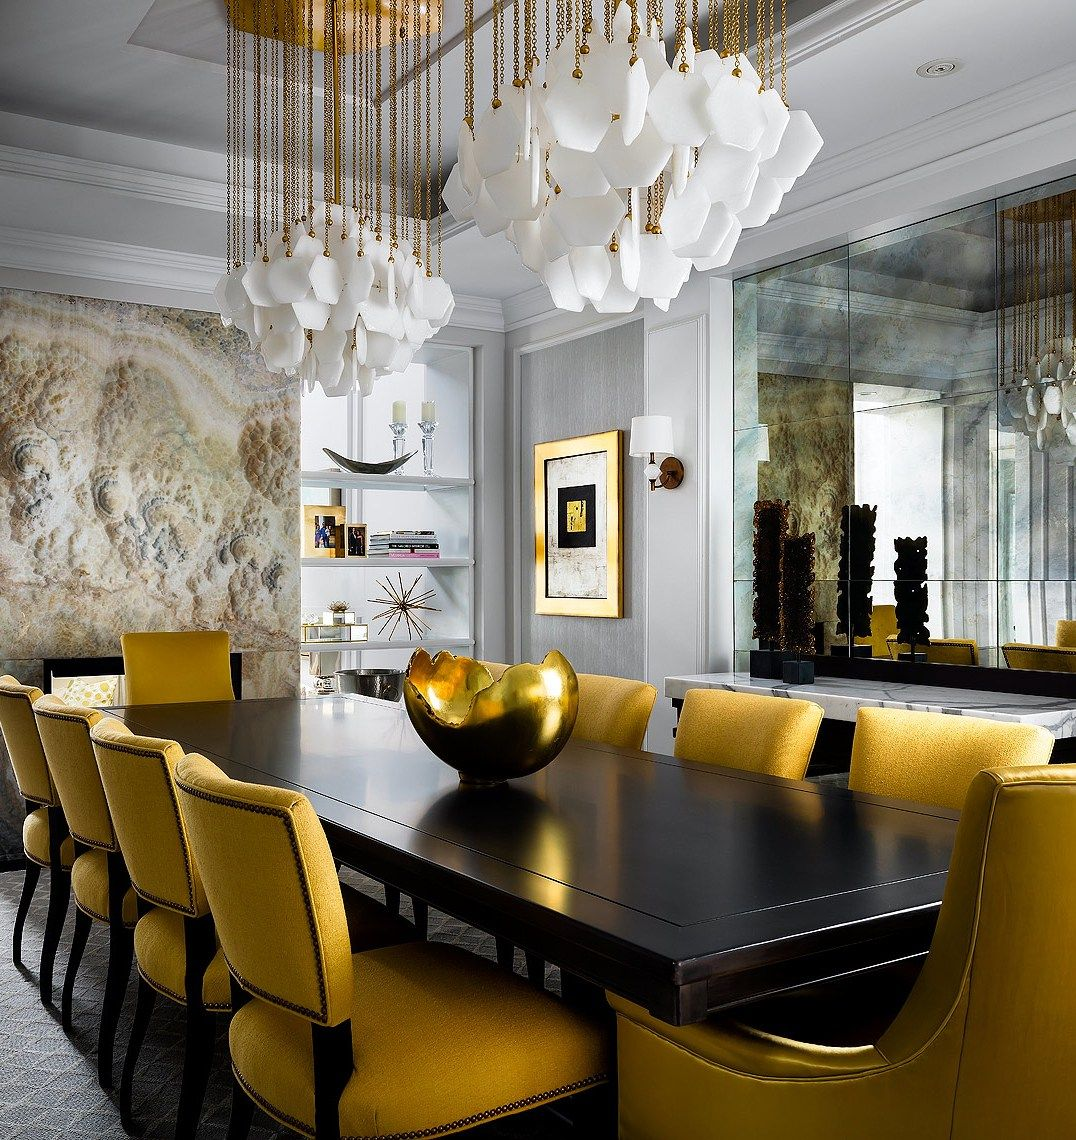 Glamorous Gold Dining Room Photographed By Brandon Barre Elegant Dining Room Dining Room Design Luxury Dining